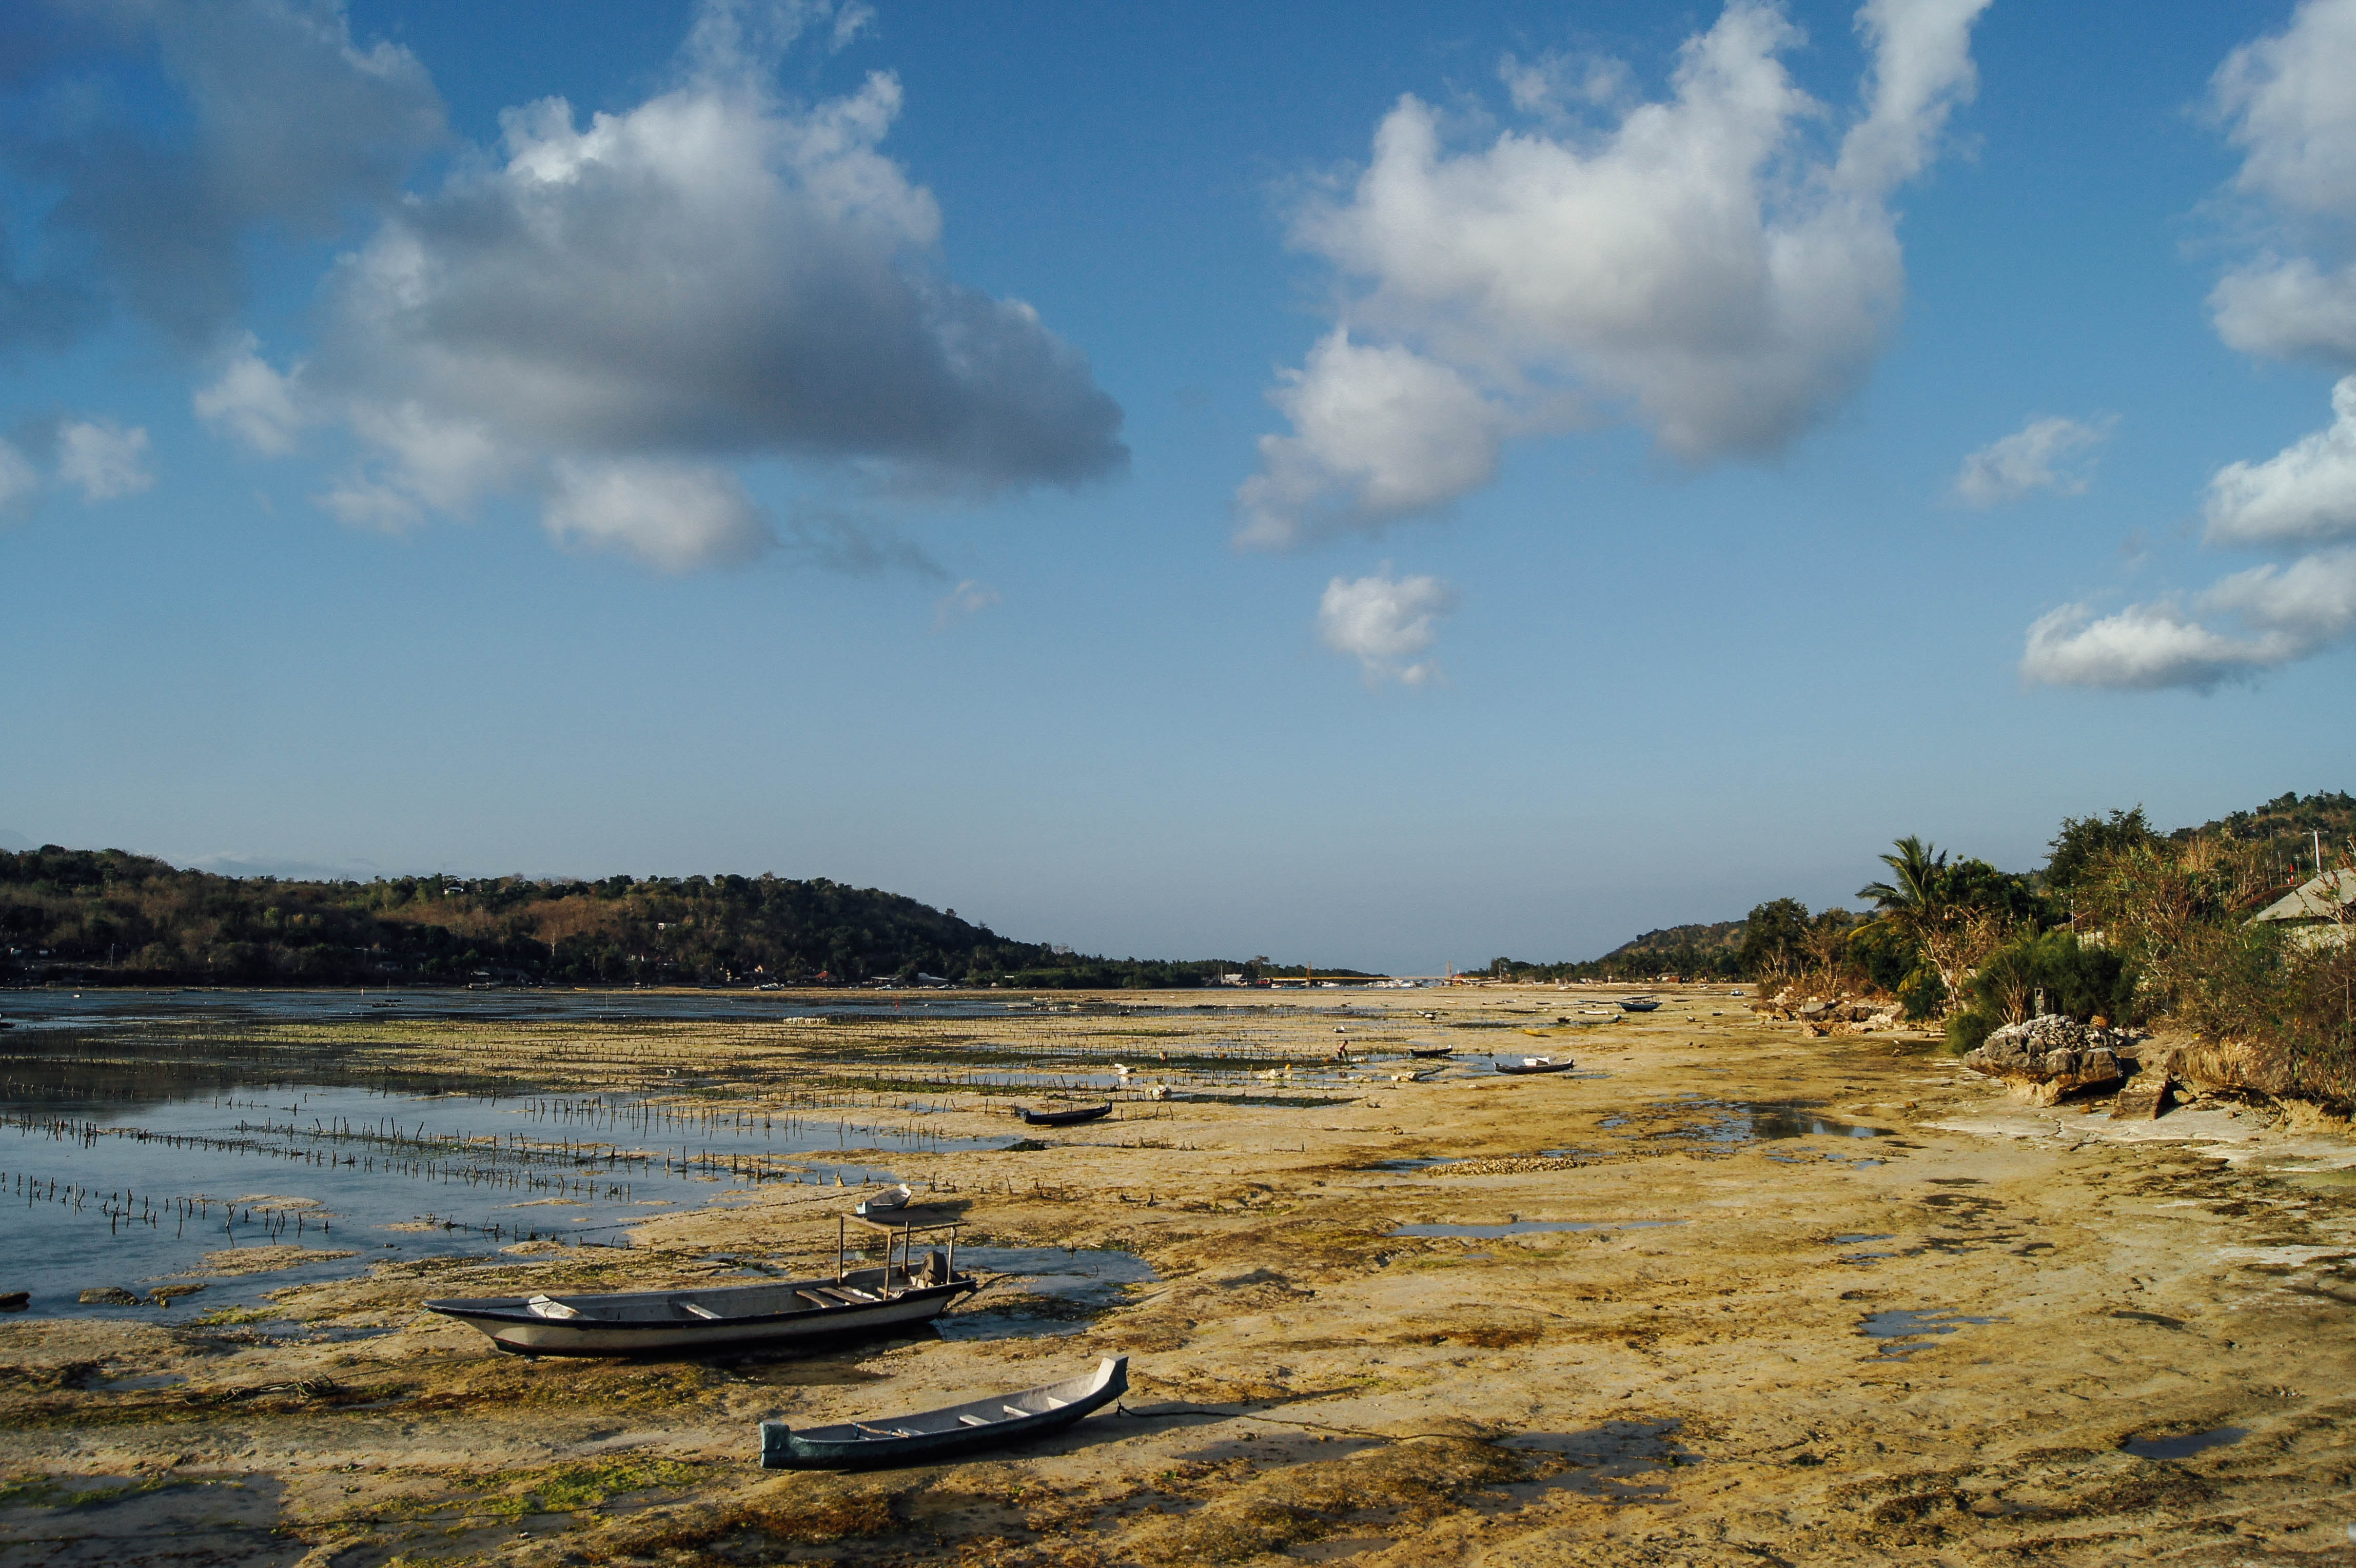 A dry river bed with fishing boats aground